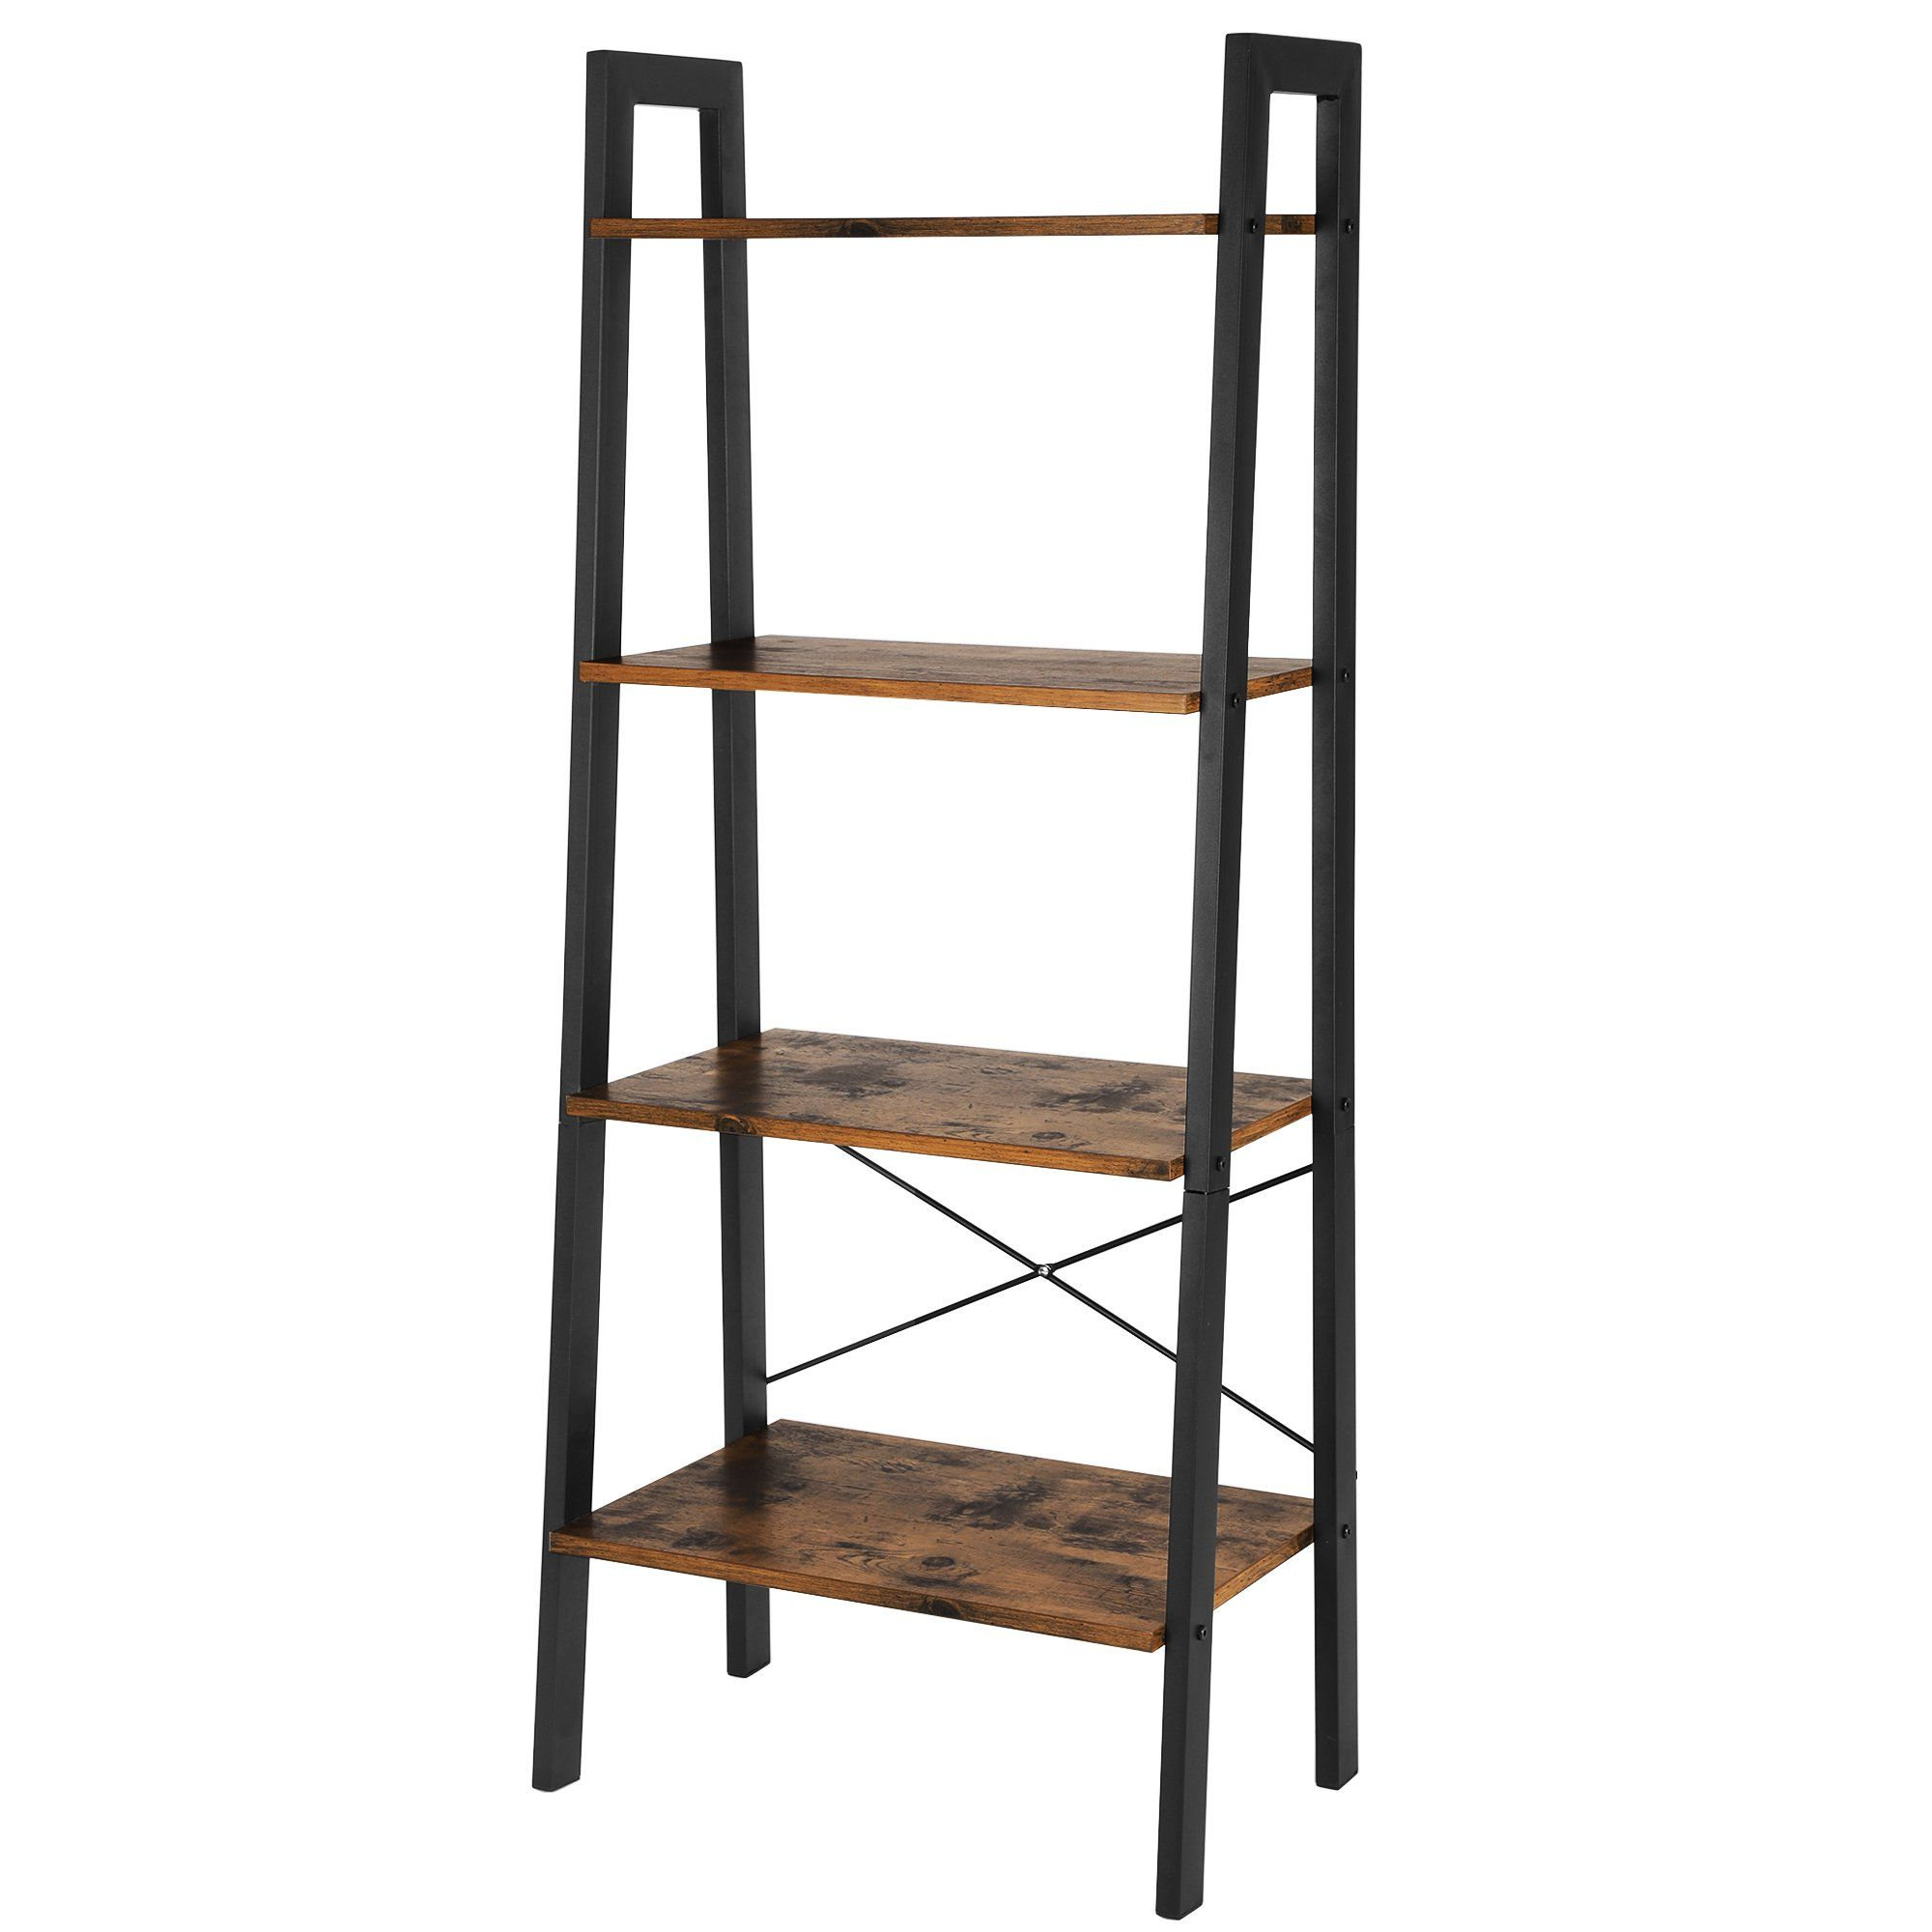 Rech 4 Tier Etagere Bookcases Within Most Up To Date Vasagle Industrial Ladder Shelf, 4 Tier Bookshelf, Storage (View 17 of 20)